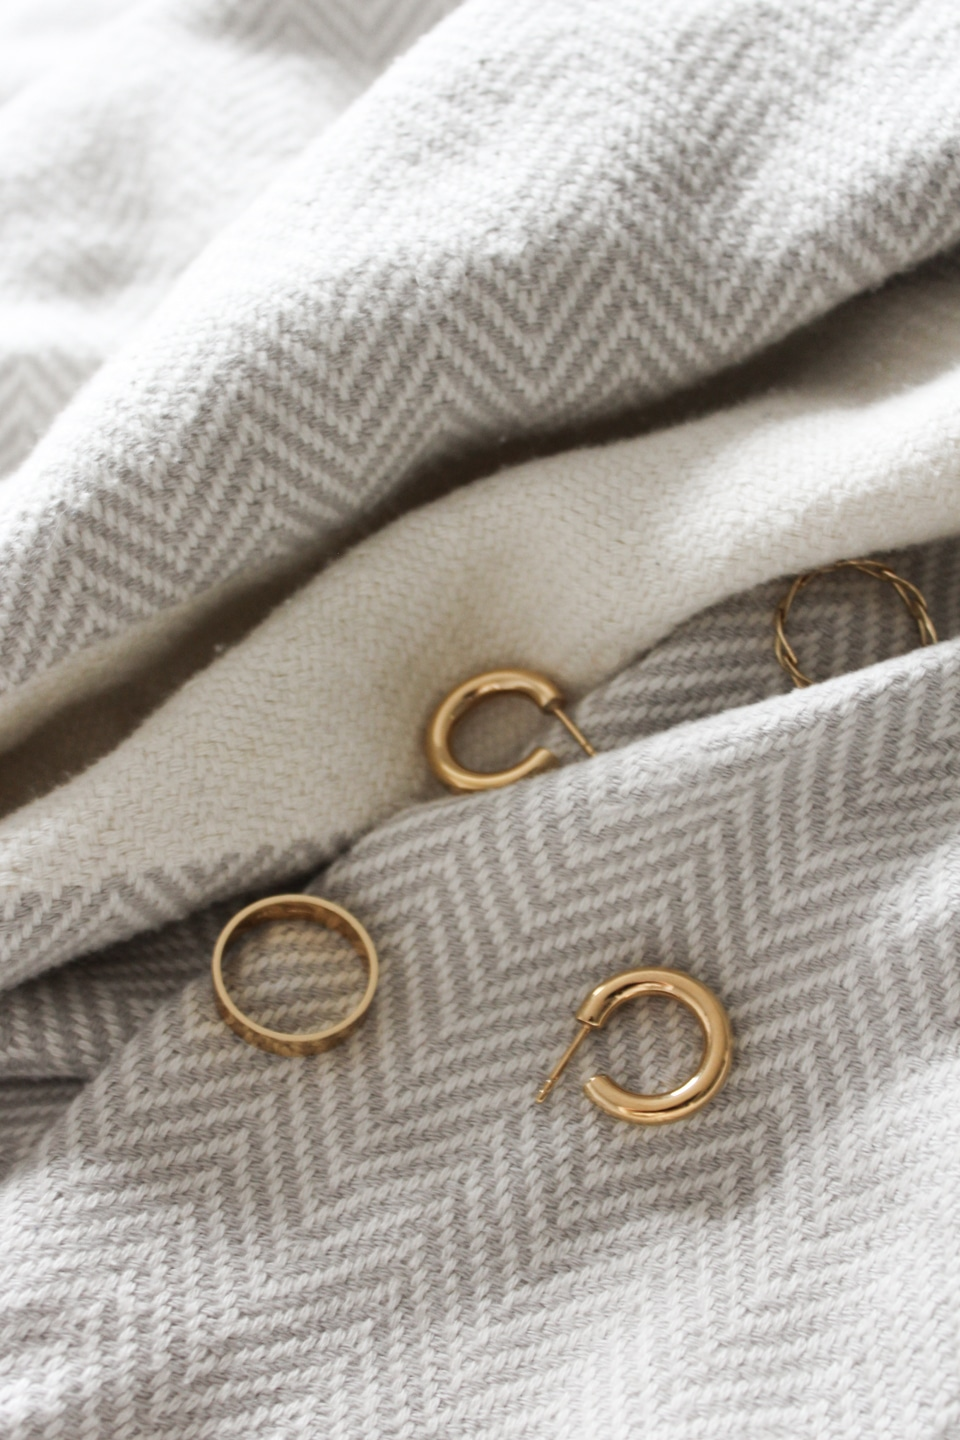 Gold rings and earrings scattered on a blanket